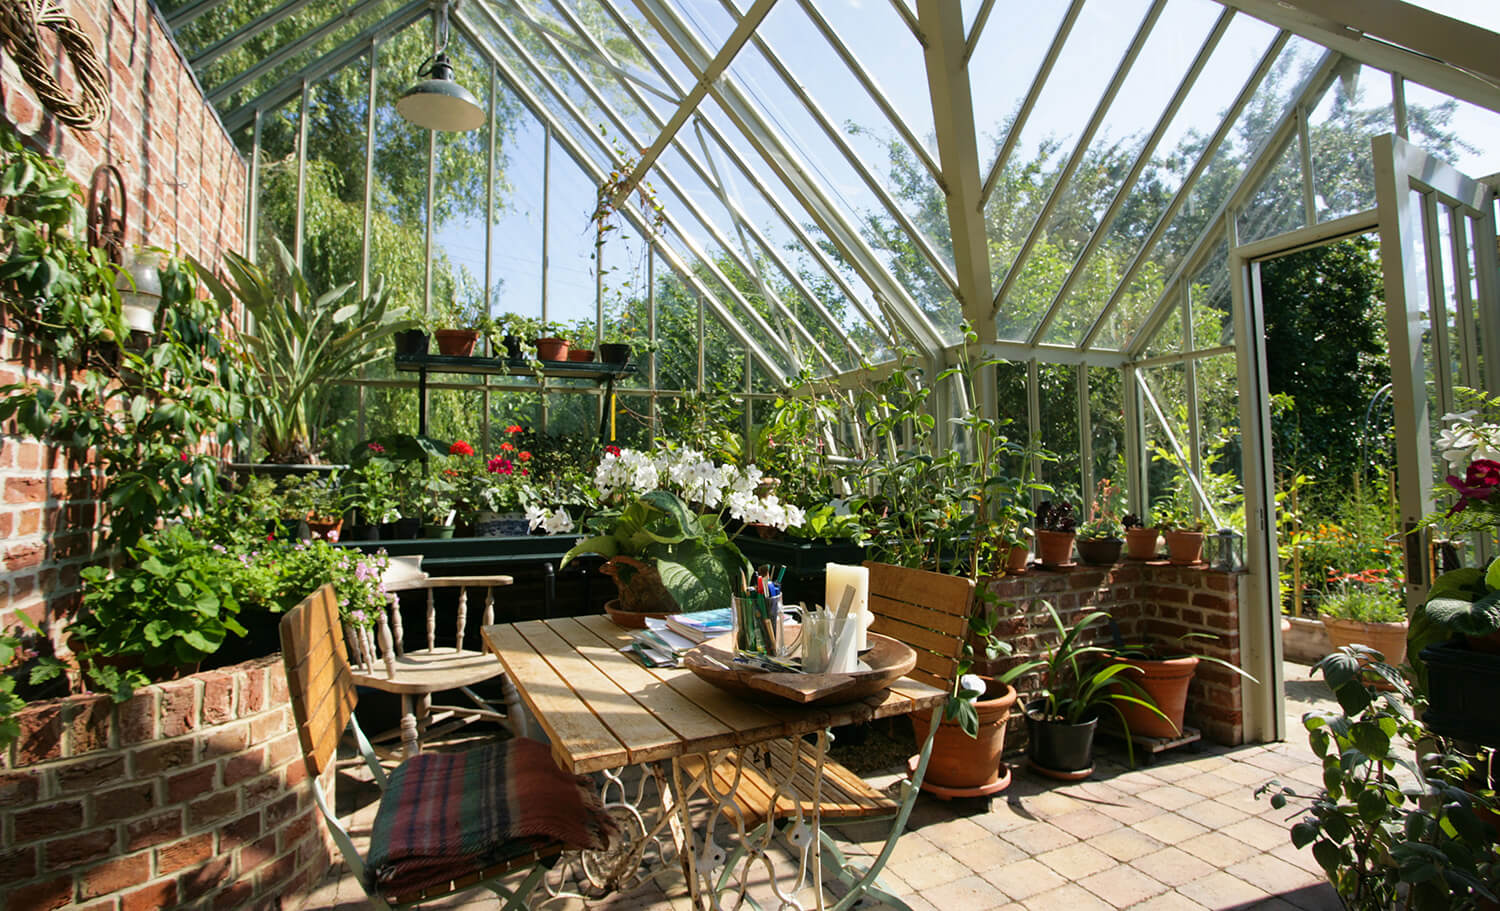 Relaxing in the greenhouse